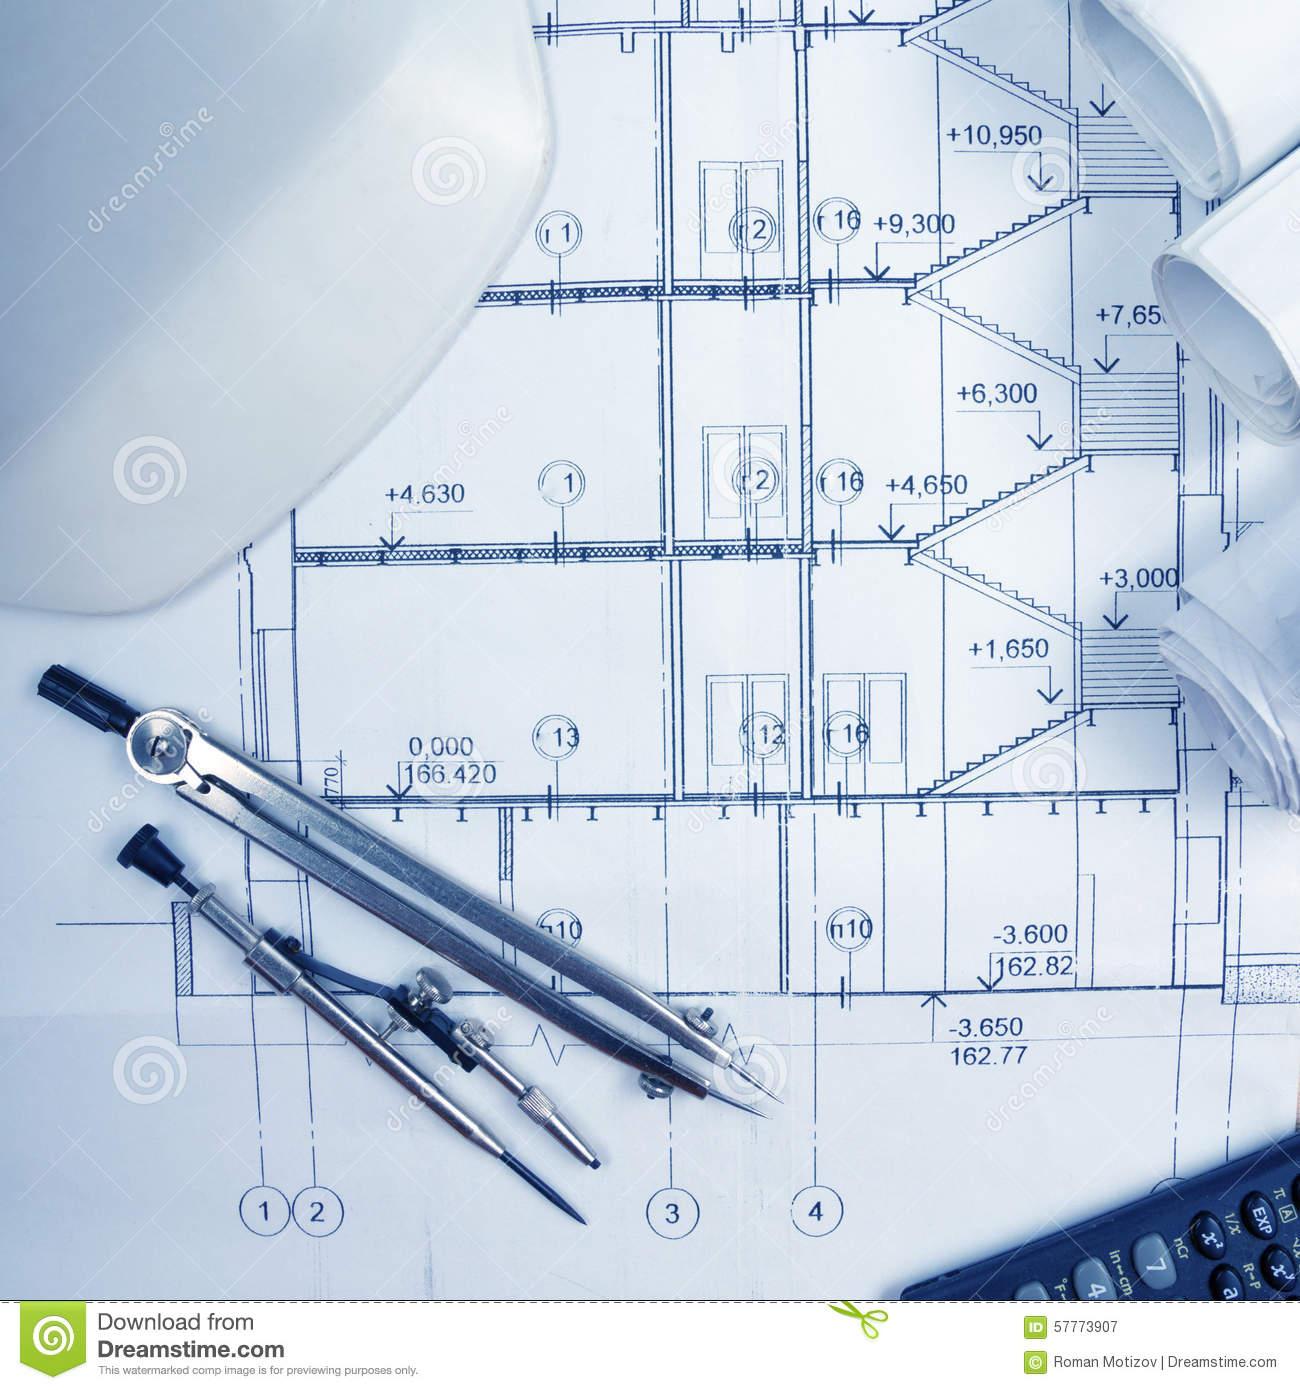 Architectural project blueprints blueprint rolls for Blueprint estimator